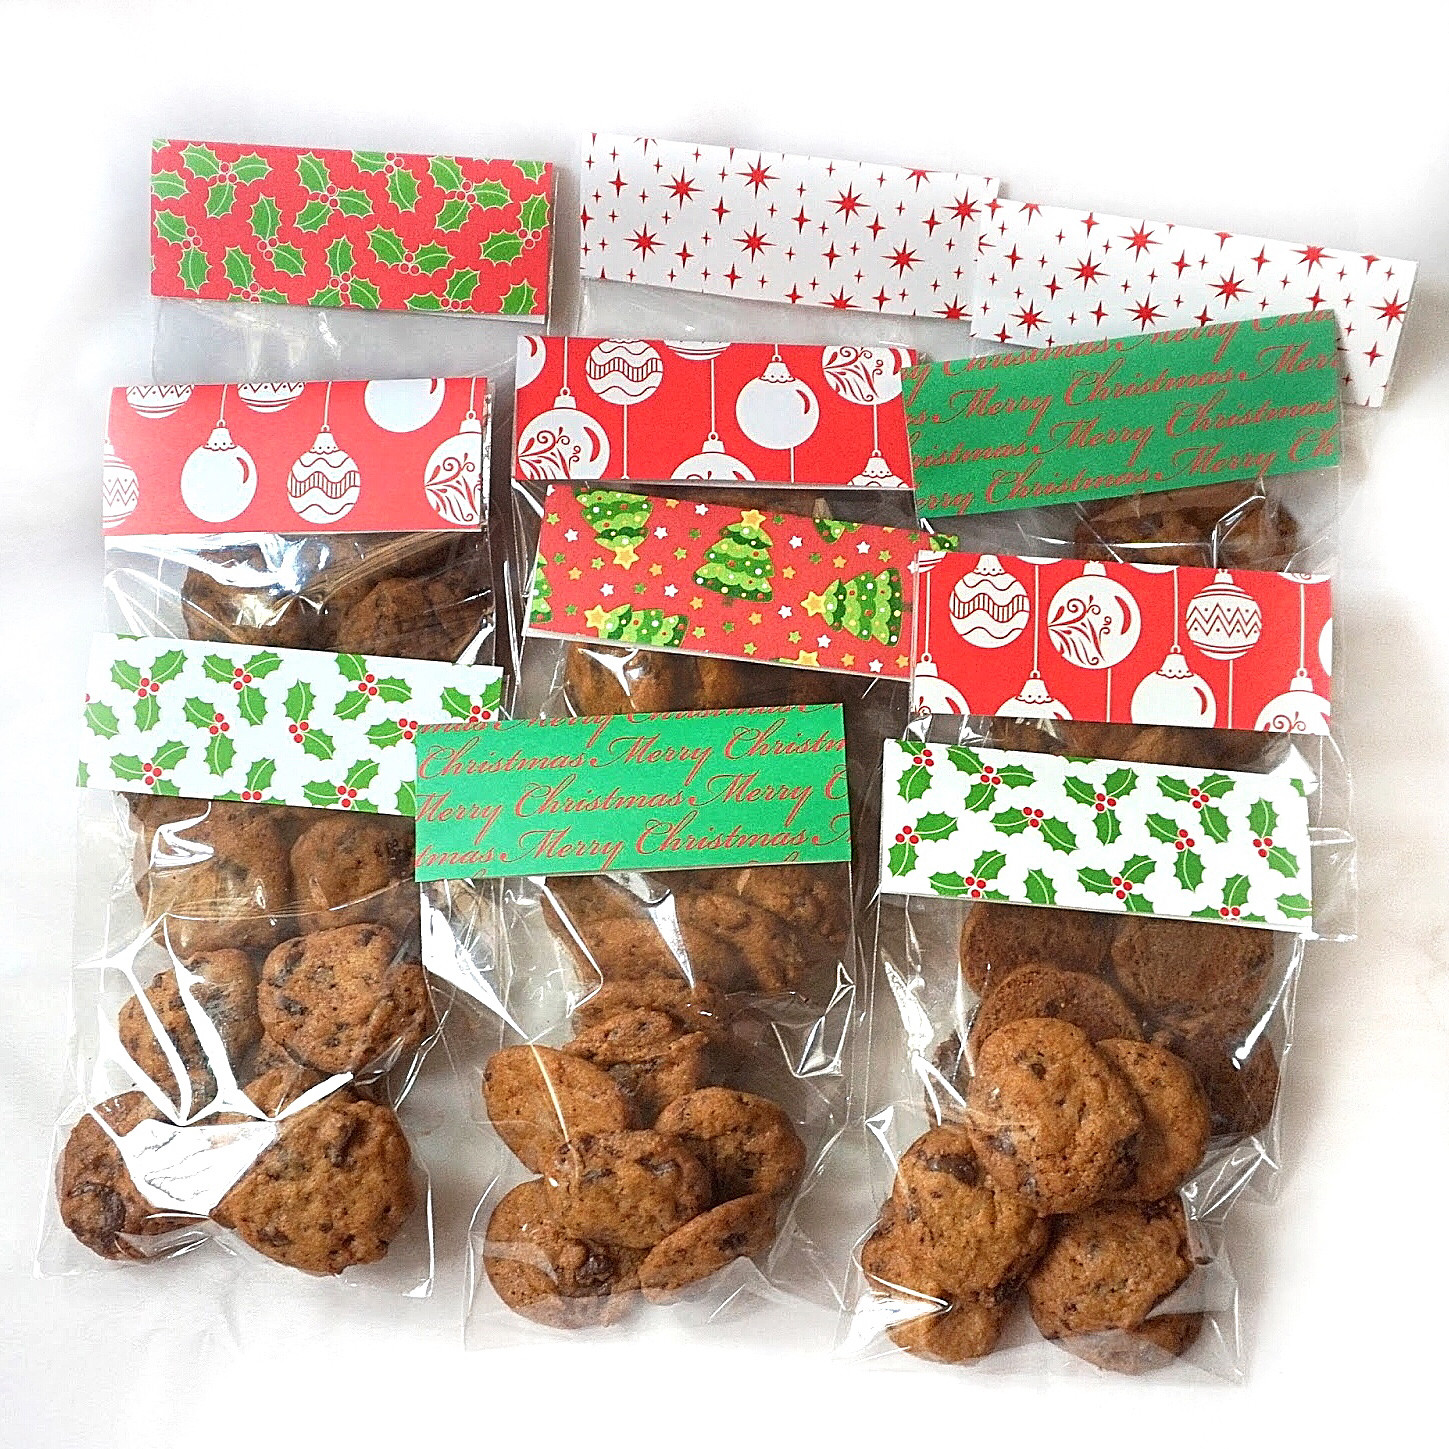 Christmas Cookies In A Bag  Sherbakes DIY Christmas Cookie Bags as Gifts